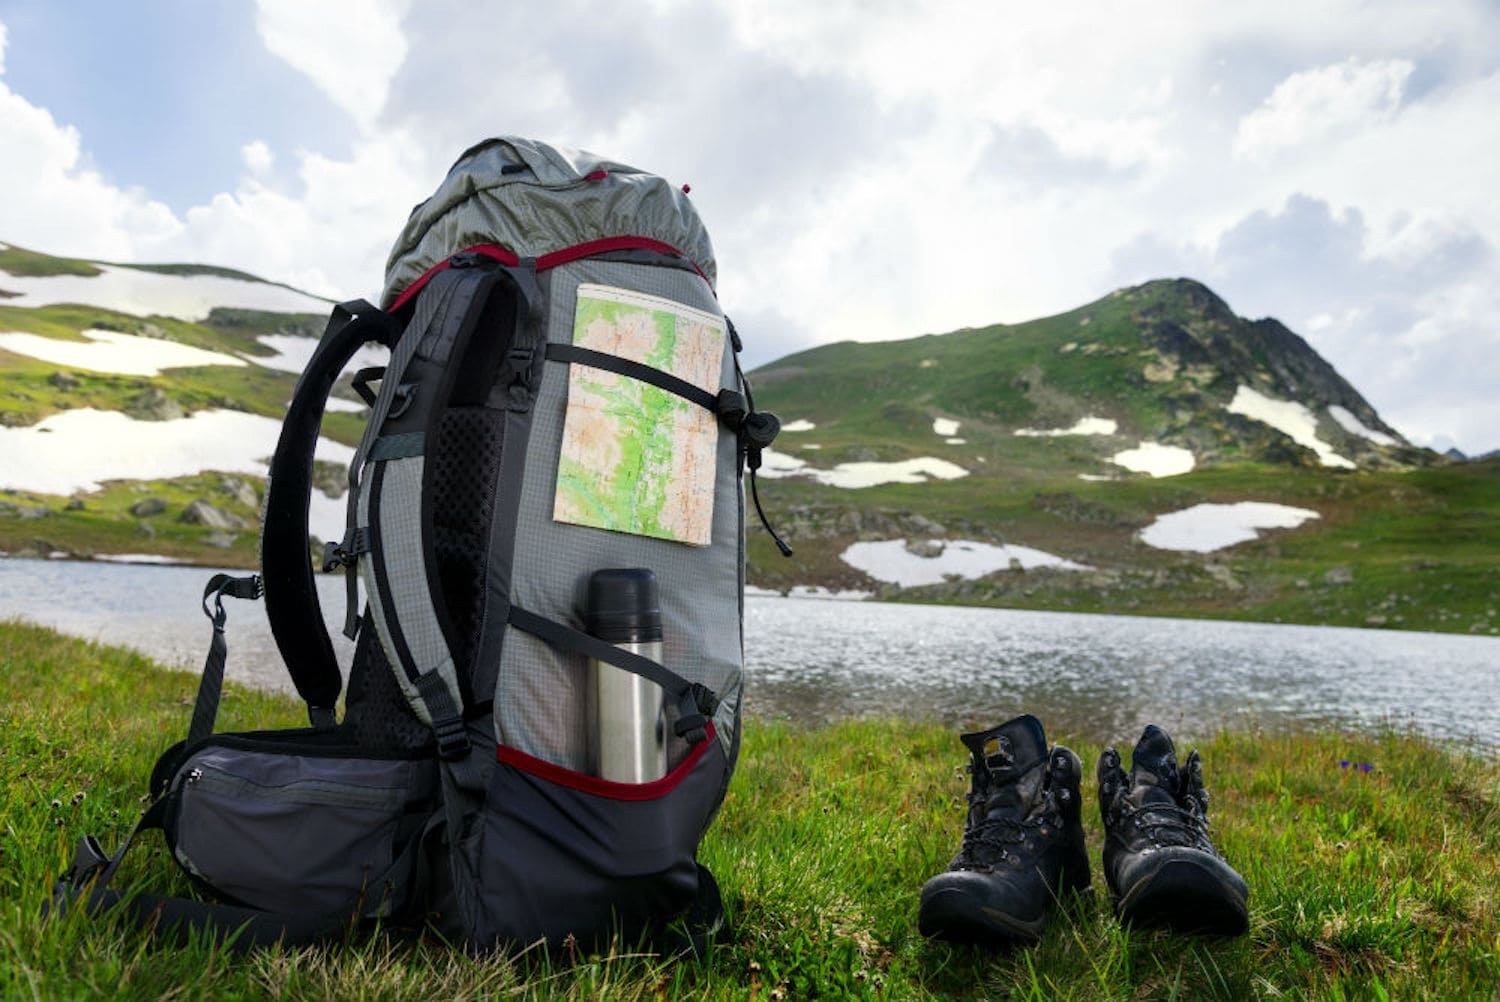 Backpack and hiking shoes next to the lake and mountains